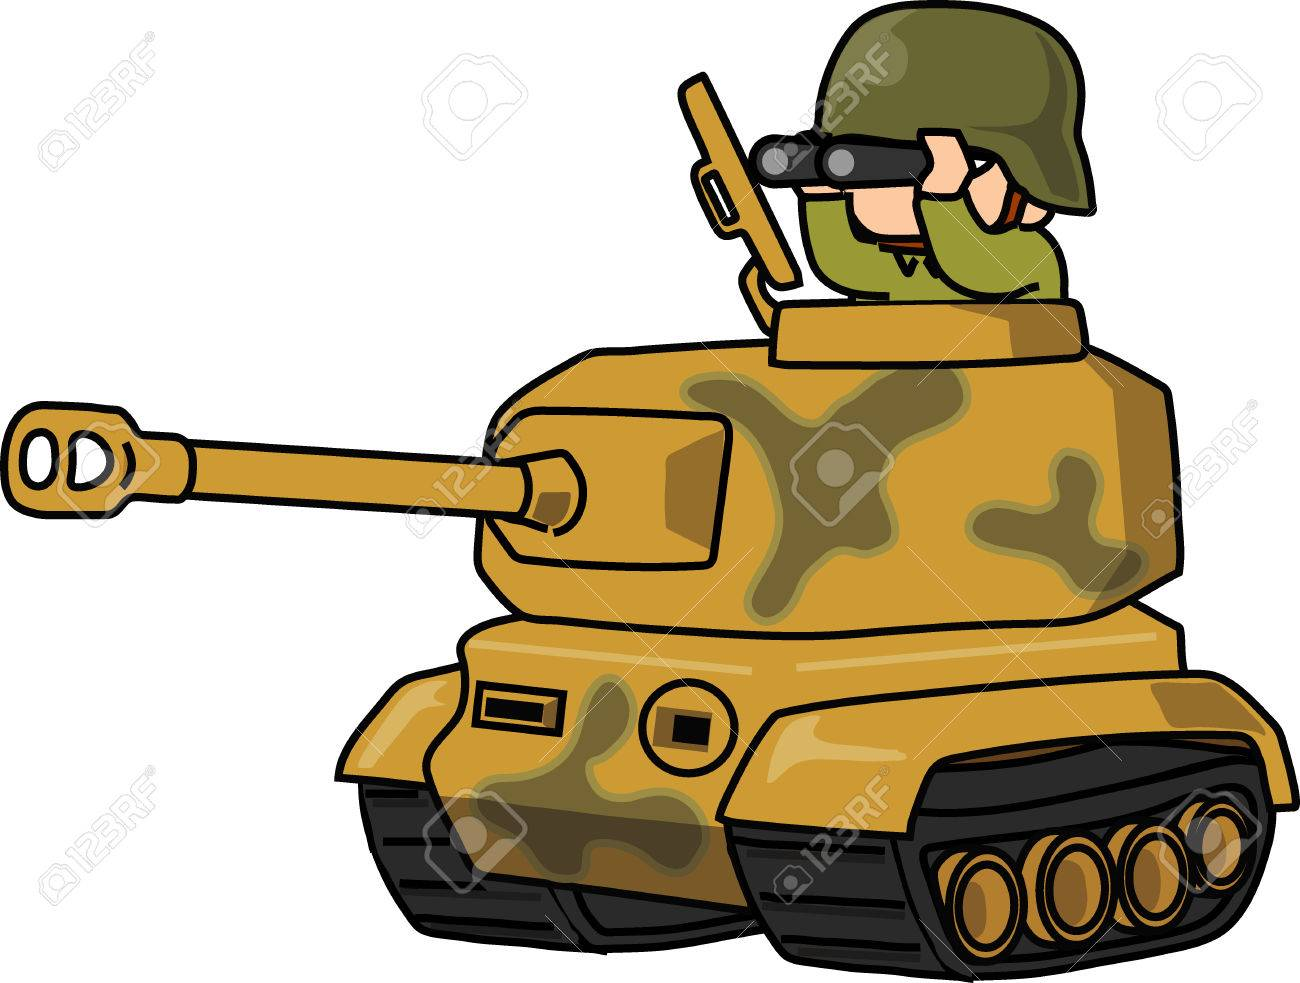 Grand Army of the Republic - FANDOM powered by Wikia Army tank cartoon images